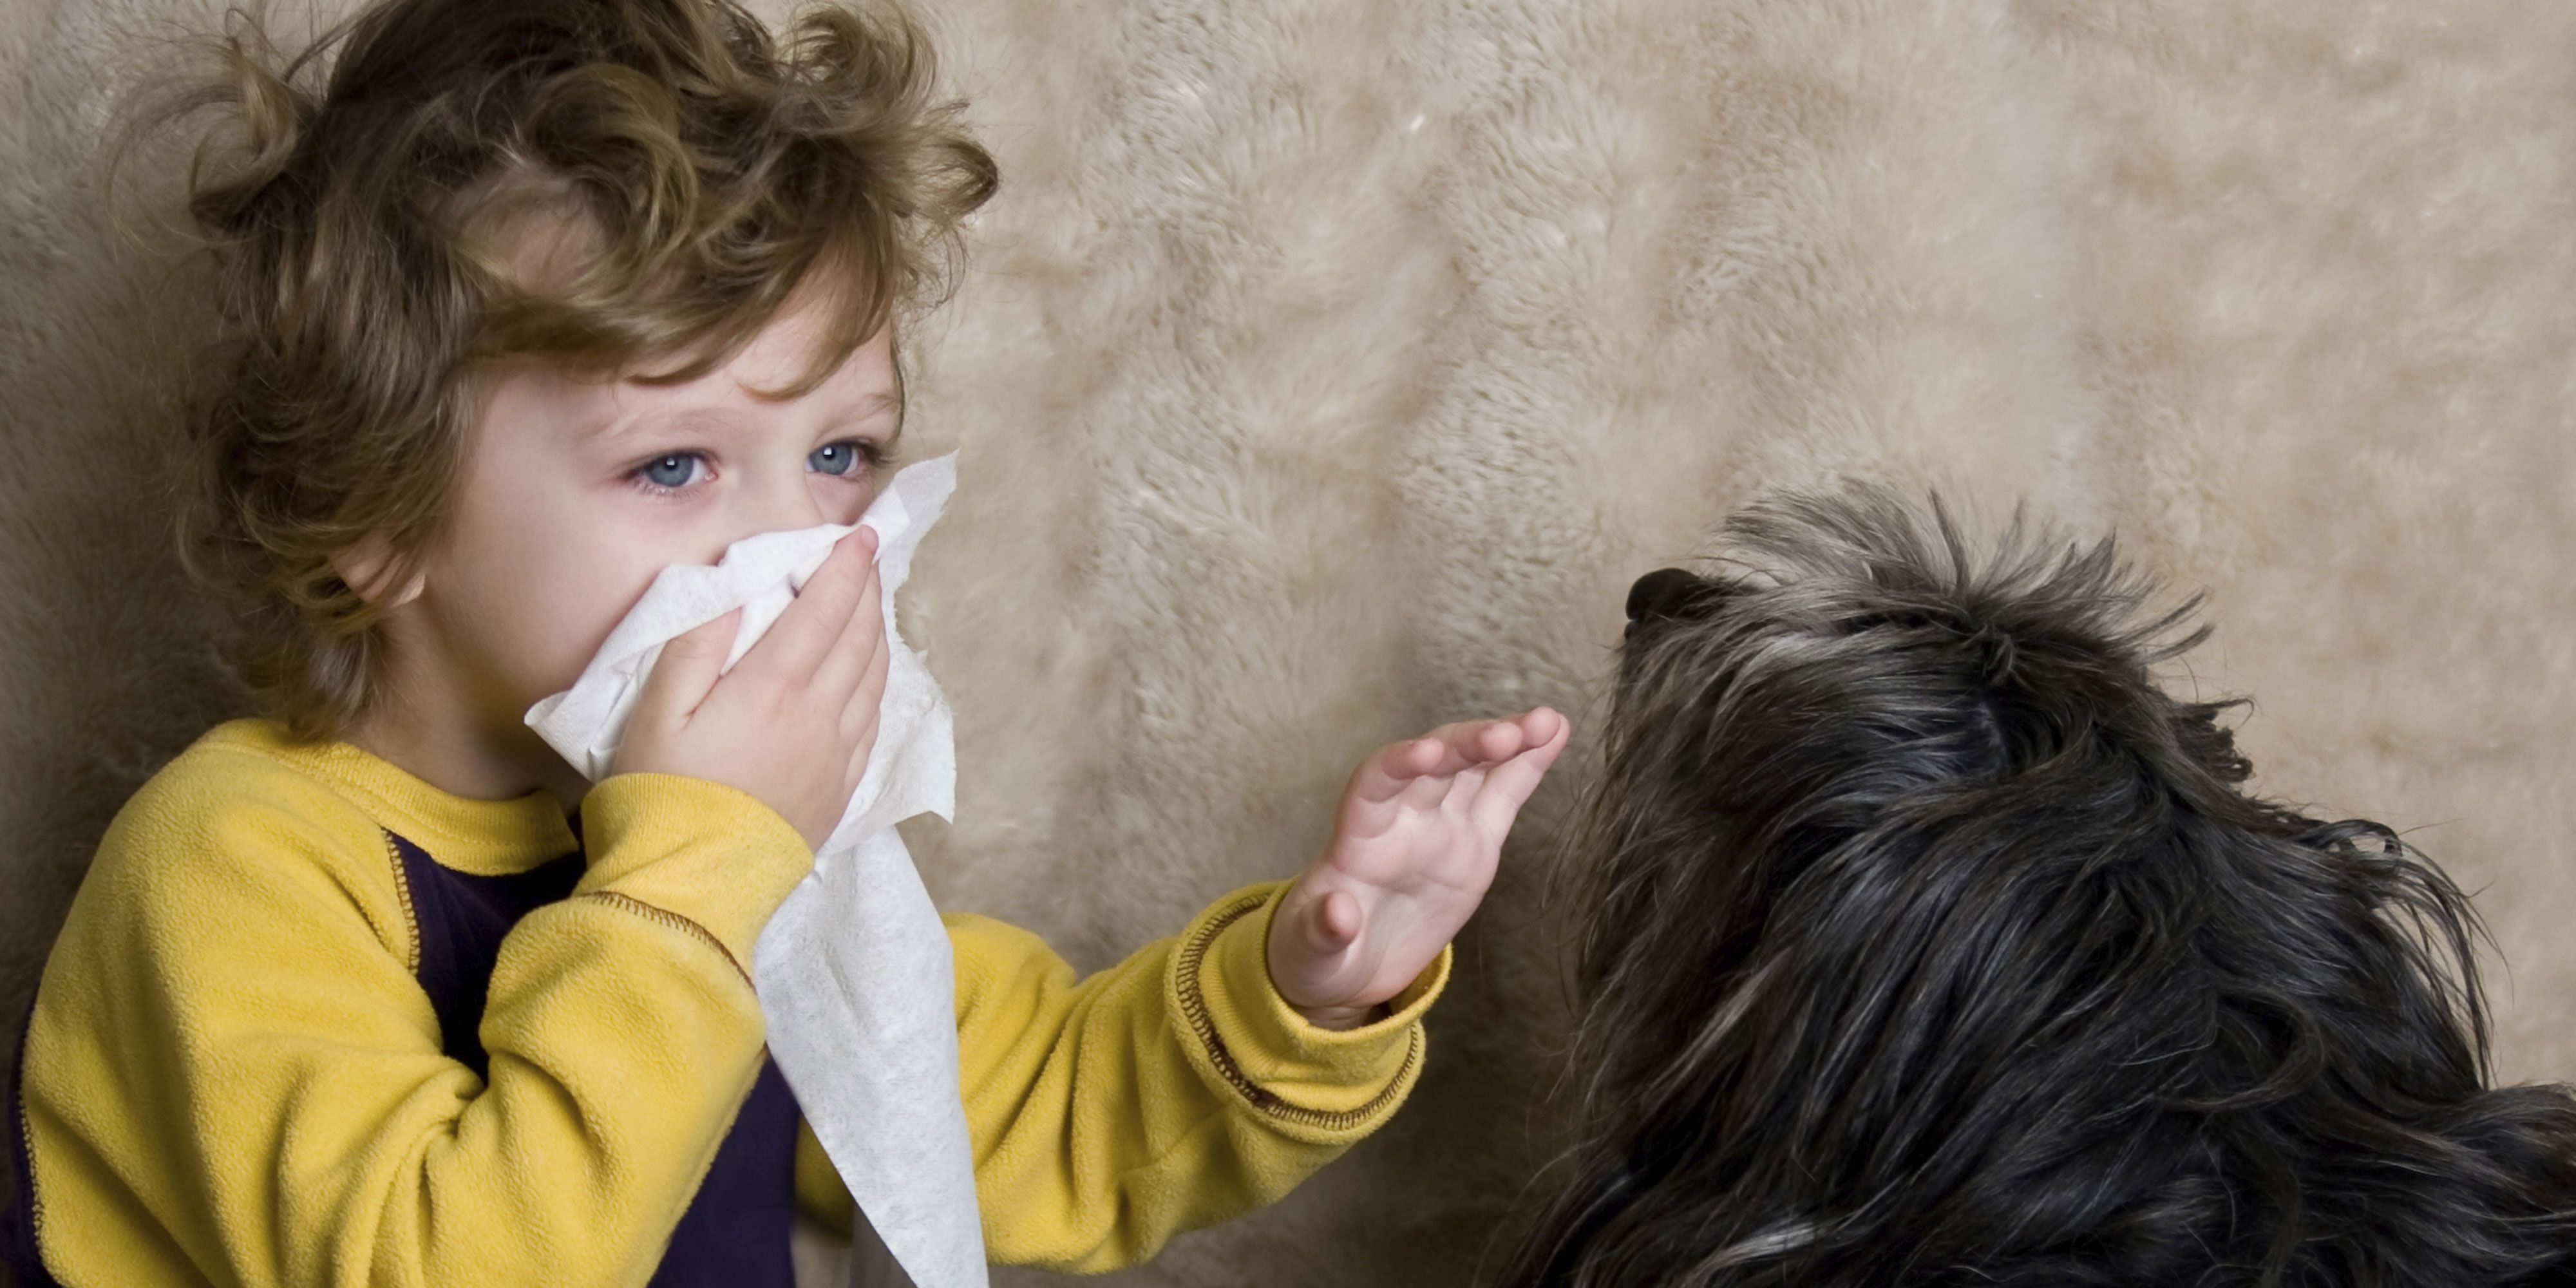 What is dangerous allergy in a child?